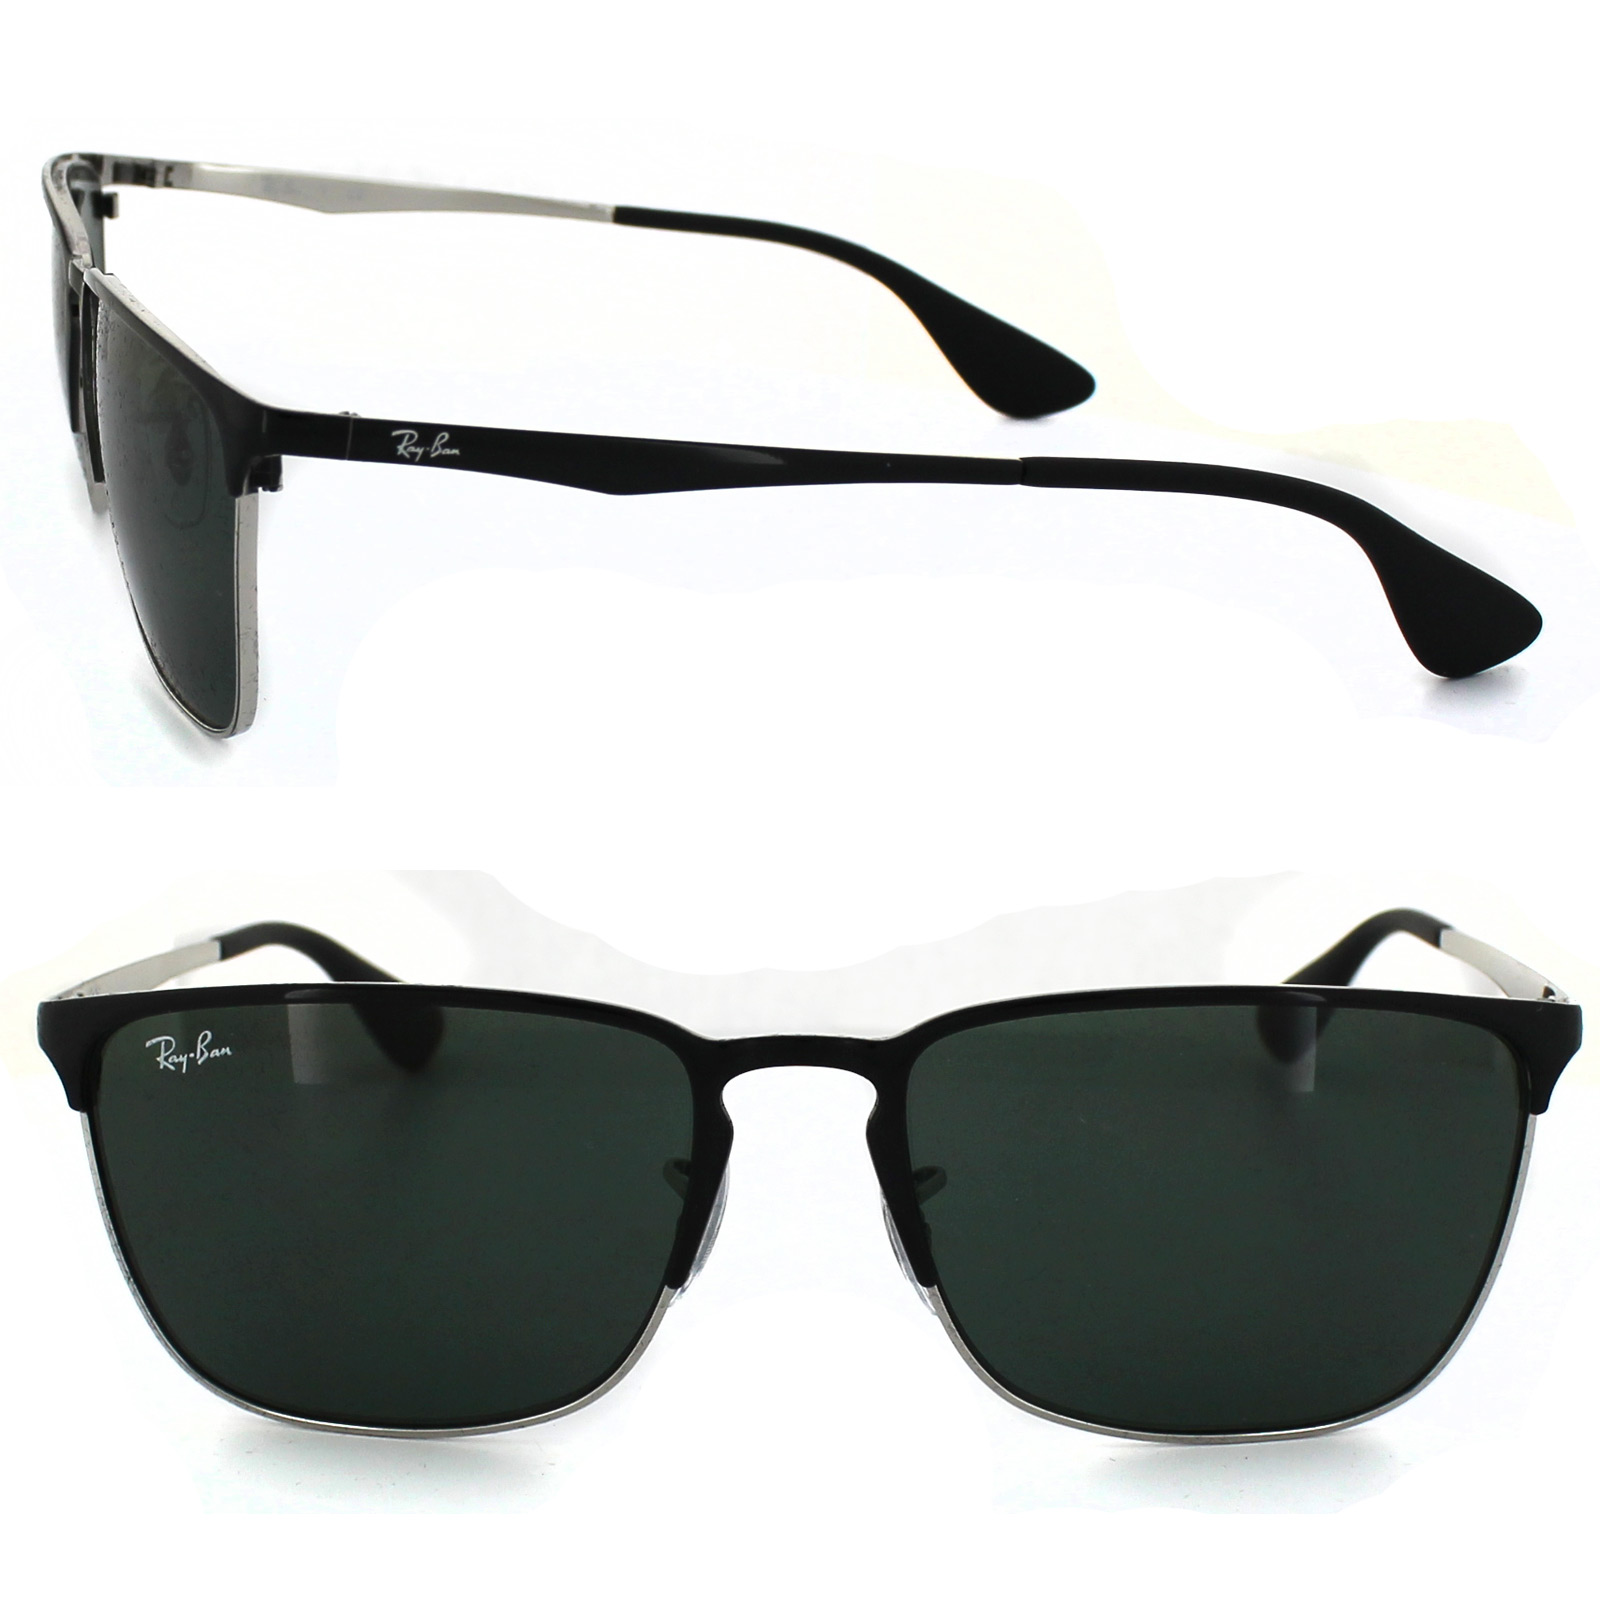 ray ban 4034 sunglasses for sale | Veins Treatment